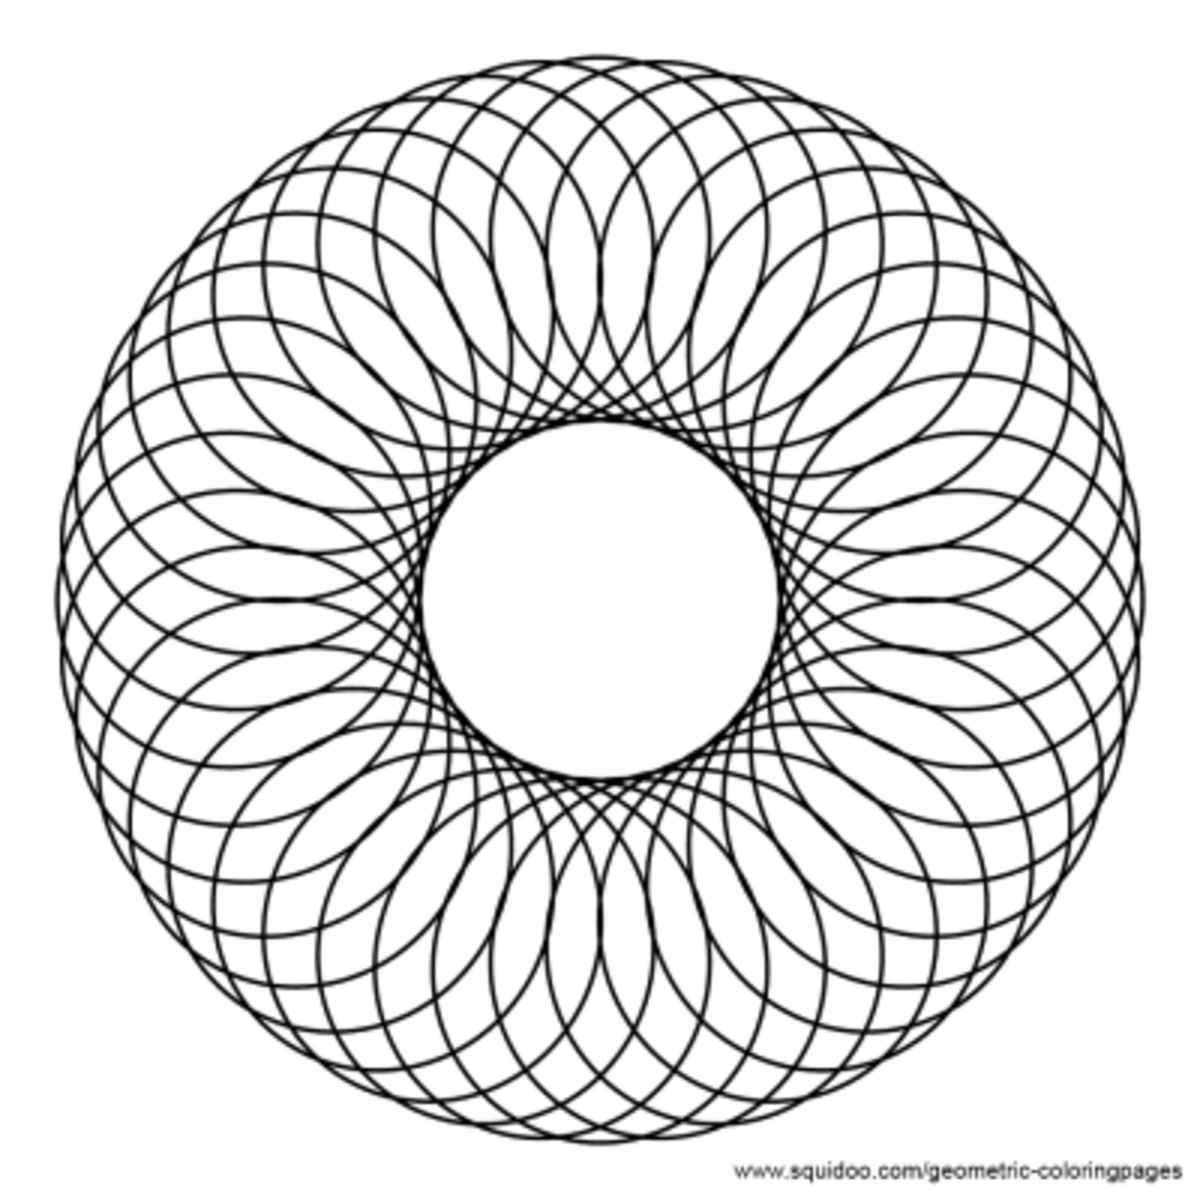 Geometric coloring pages hubpages for Geometric flower coloring pages